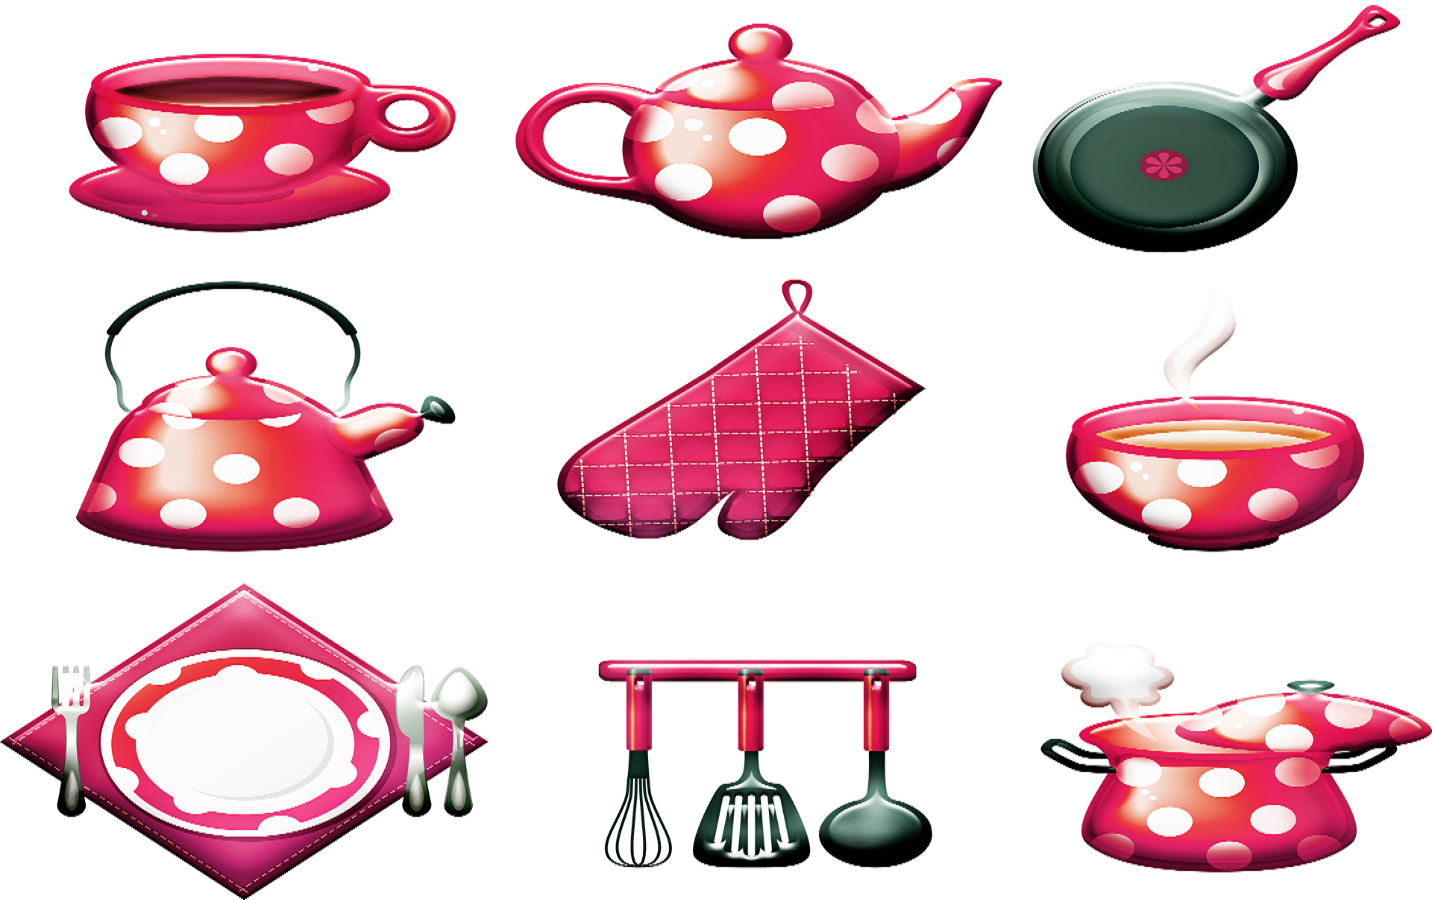 Different Types of Kitchenware You Might Not Know About